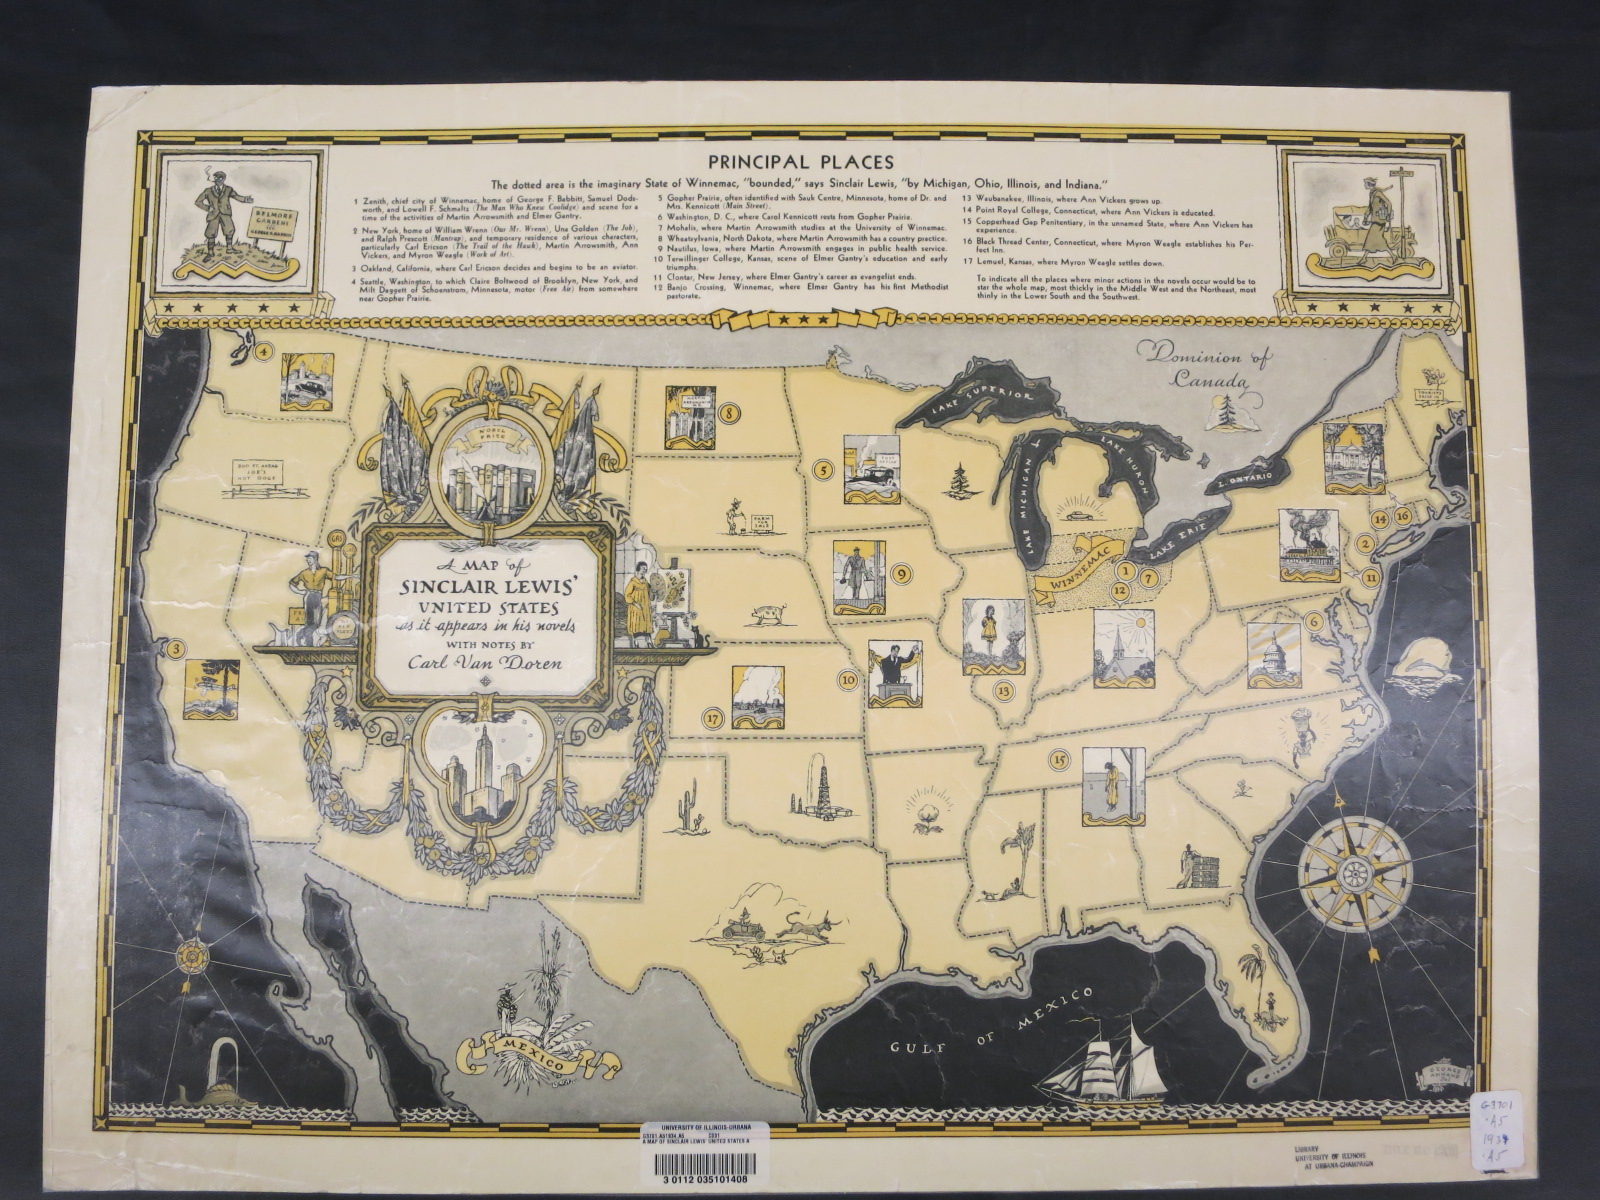 A Map of Sinclair Lewis' United States | Map Liry ... Sinclair Map on south suburban map, teapot dome scandal map, superior map, kemmerer map, dallas va medical center map, thomas map, sowa map, toledo map, richfield ct map, jefferson map, mountain view map, stetson map, chapman map, alpine map, romanov map, chevron map, davis map, georgia reservoir map, miller map, allatoona map,